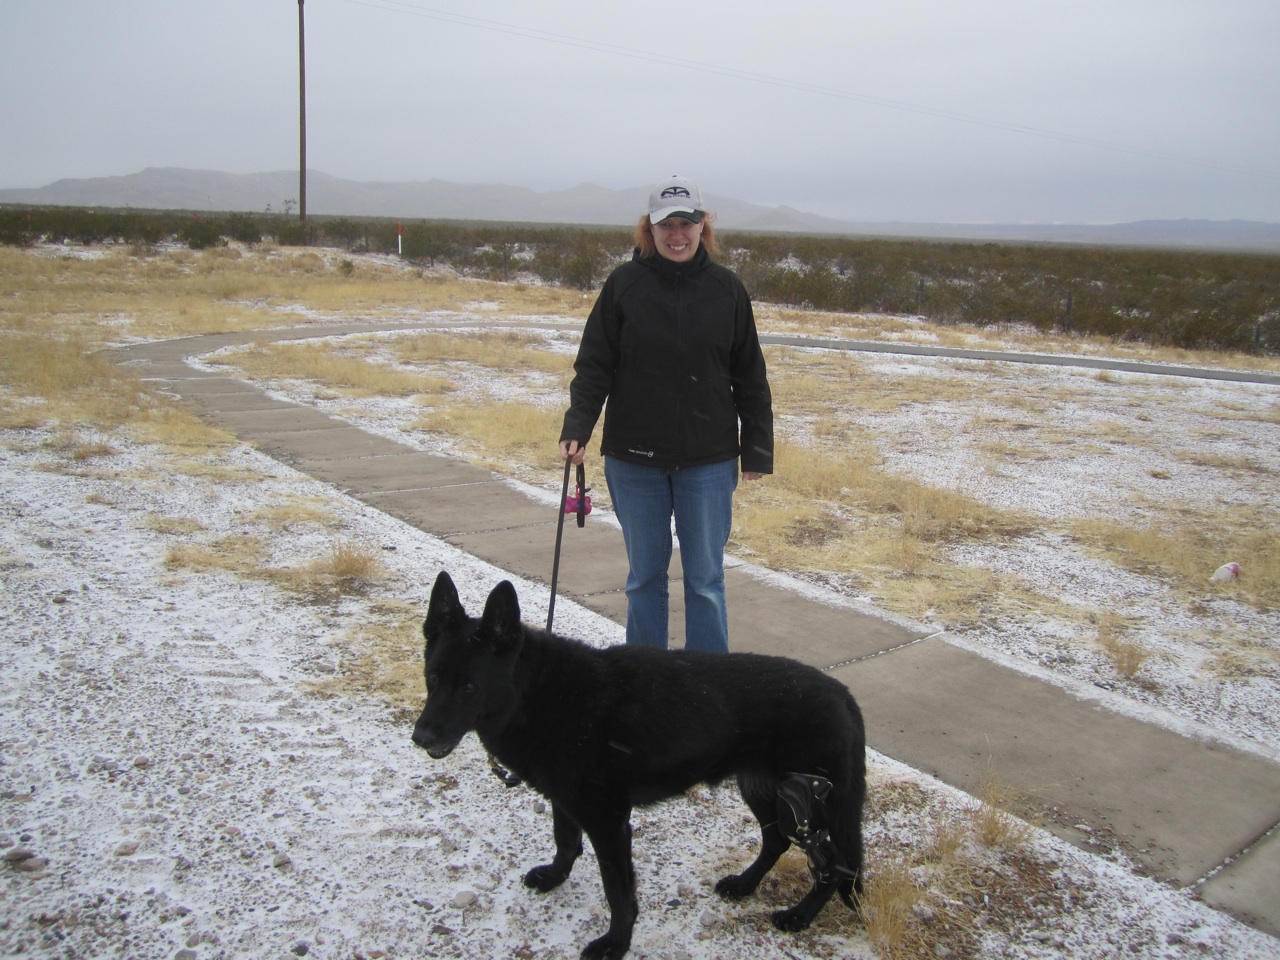 Tasha and Brenda At A Rest Stop.  Yes, That's Snow On The Ground and Flying Around